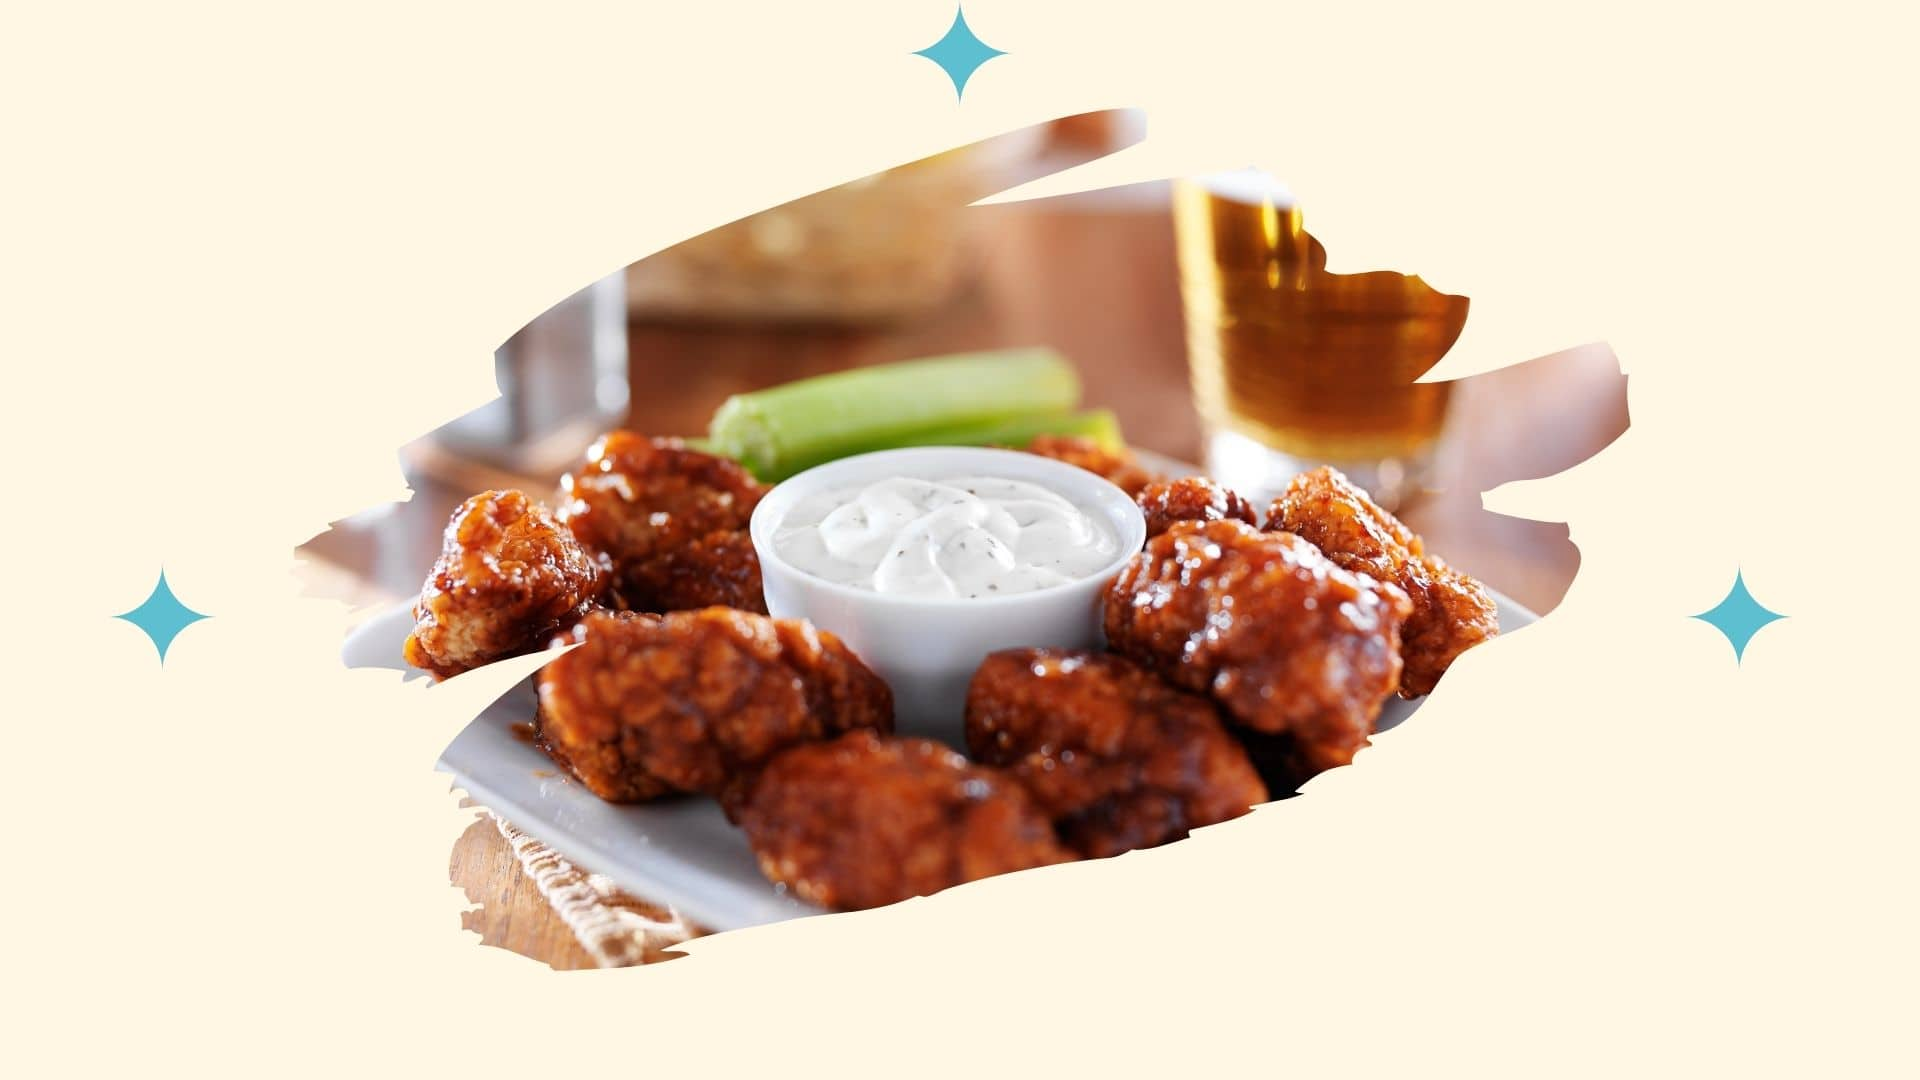 Is Wingstop Any Good?